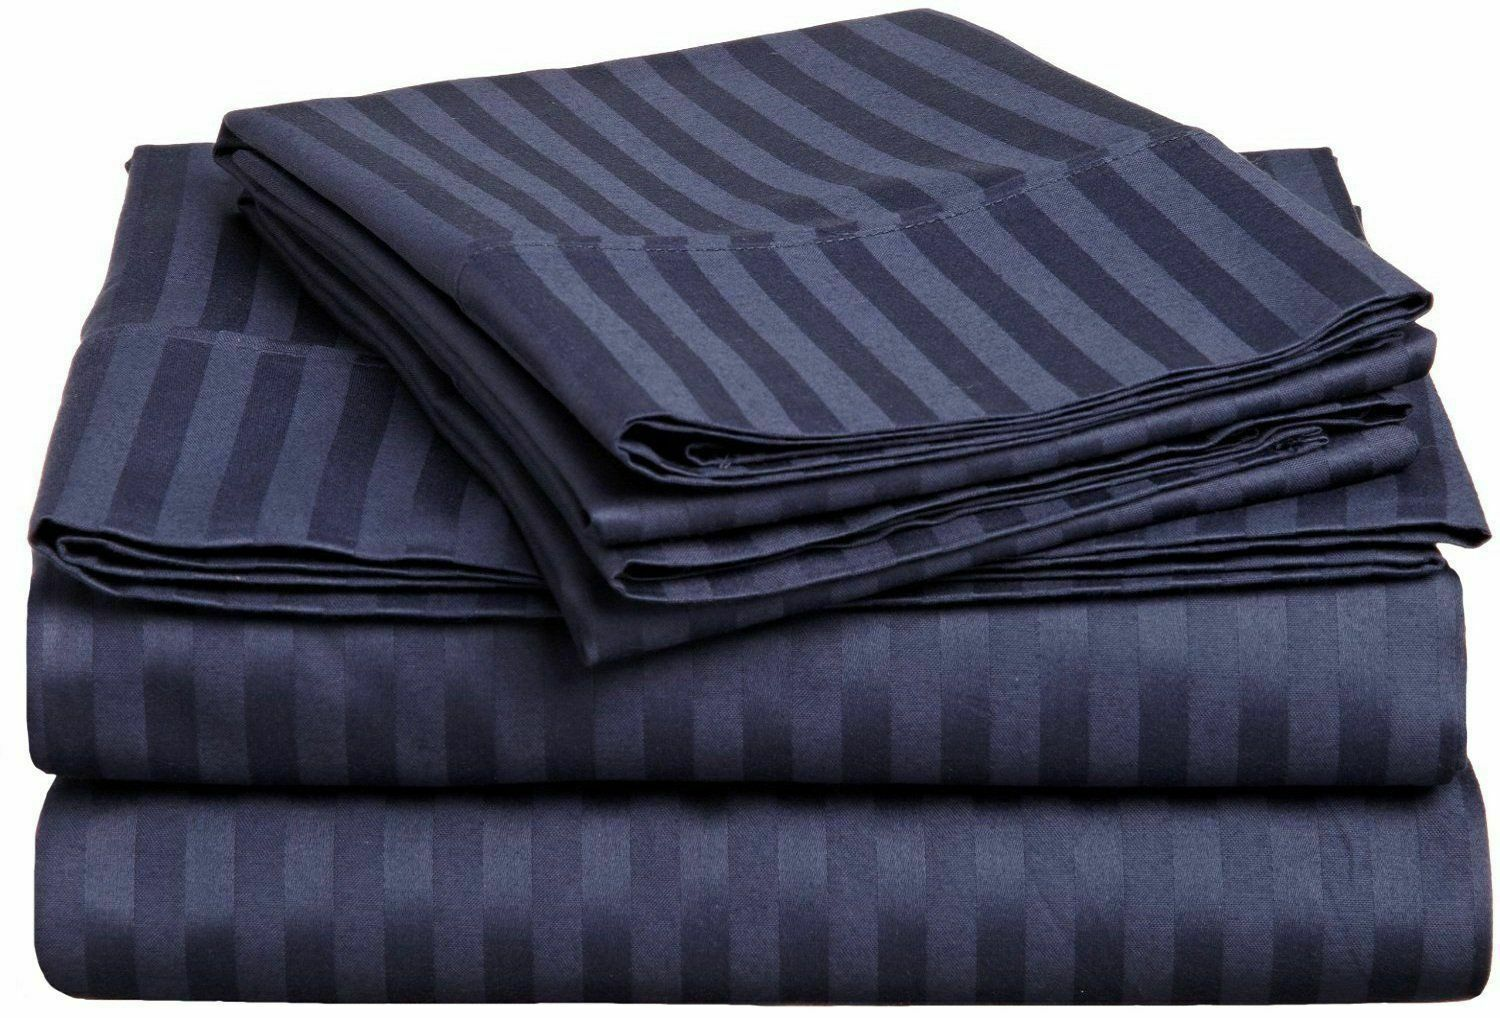 New Water Bed Sheet Set Egyptian Cotton 1000 TC All Size Navy bluee Stripe